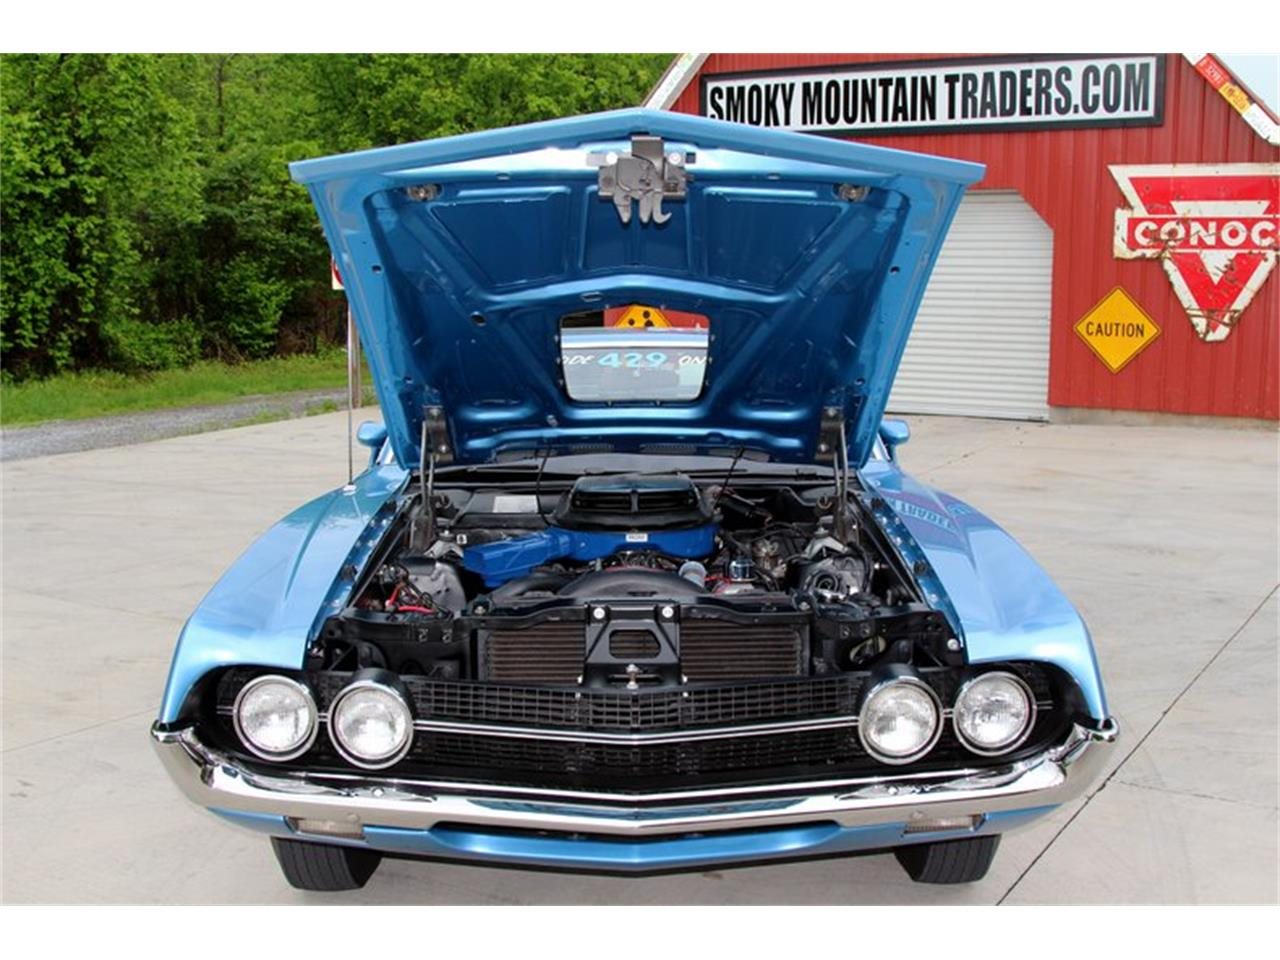 Large Picture of Classic '70 Ford Torino located in Tennessee - $64,999.00 Offered by Smoky Mountain Traders - N6PC